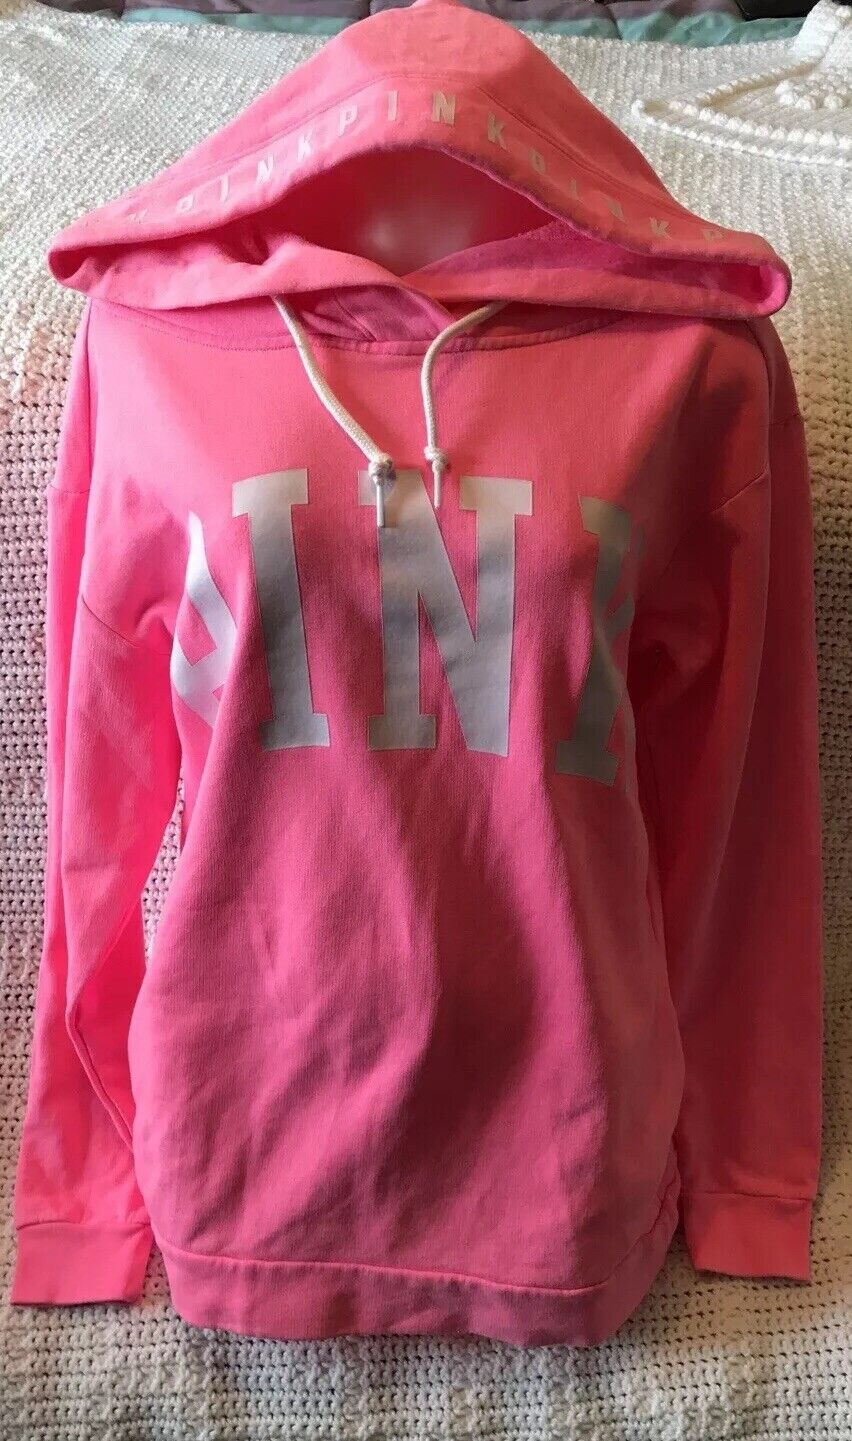 Victoria's Secret PINK Athletic Hoodie size XS XP 84A NWT